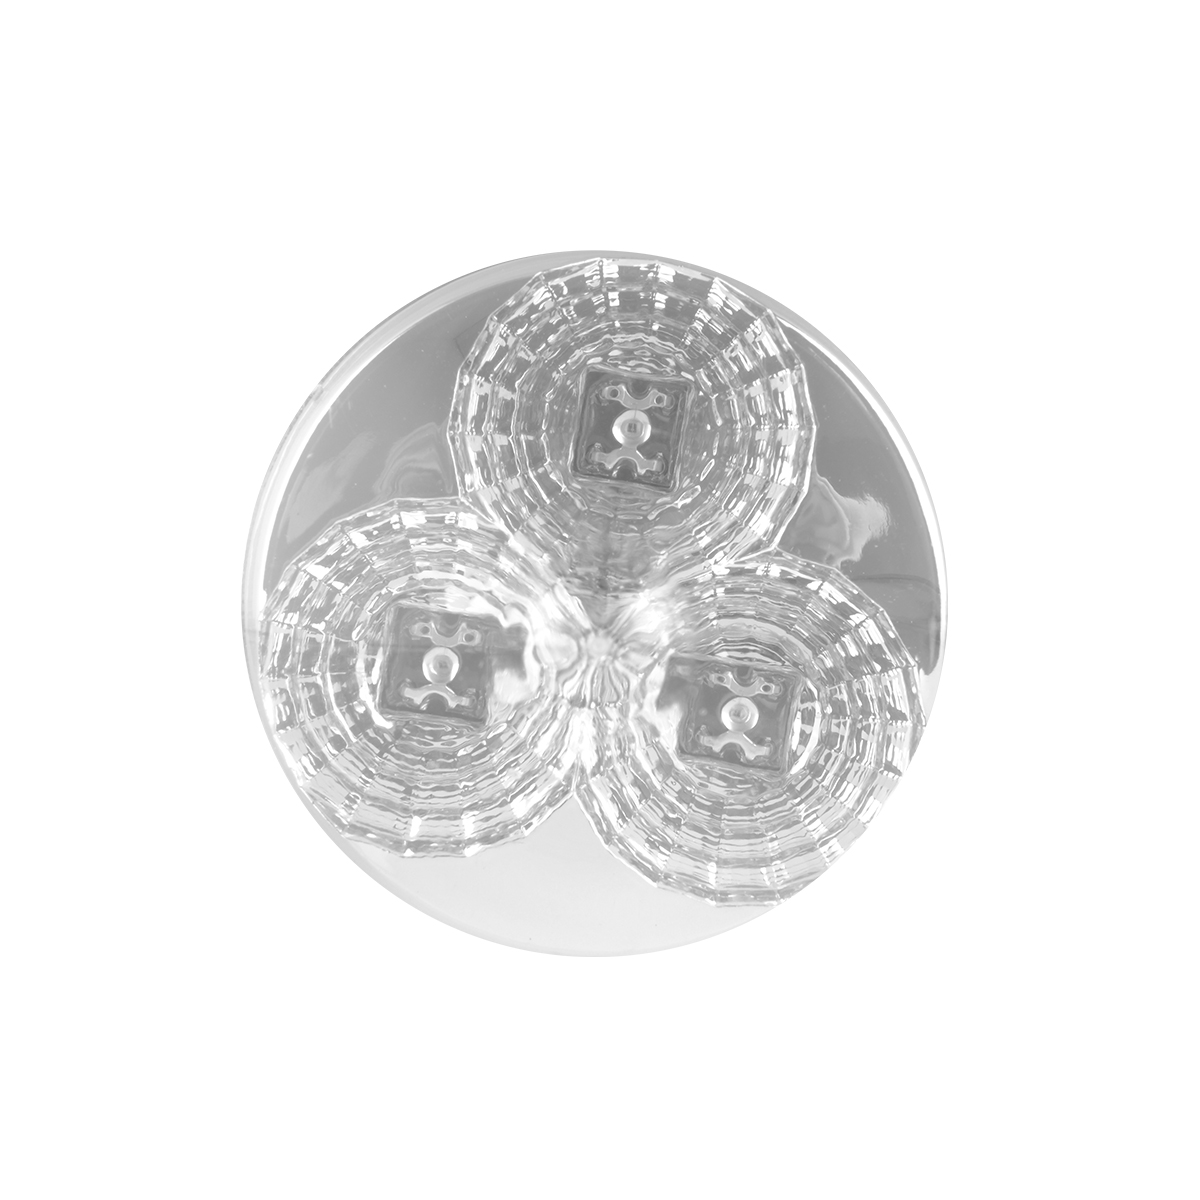 Projected Spyder LED Marker Light in Clear Lens